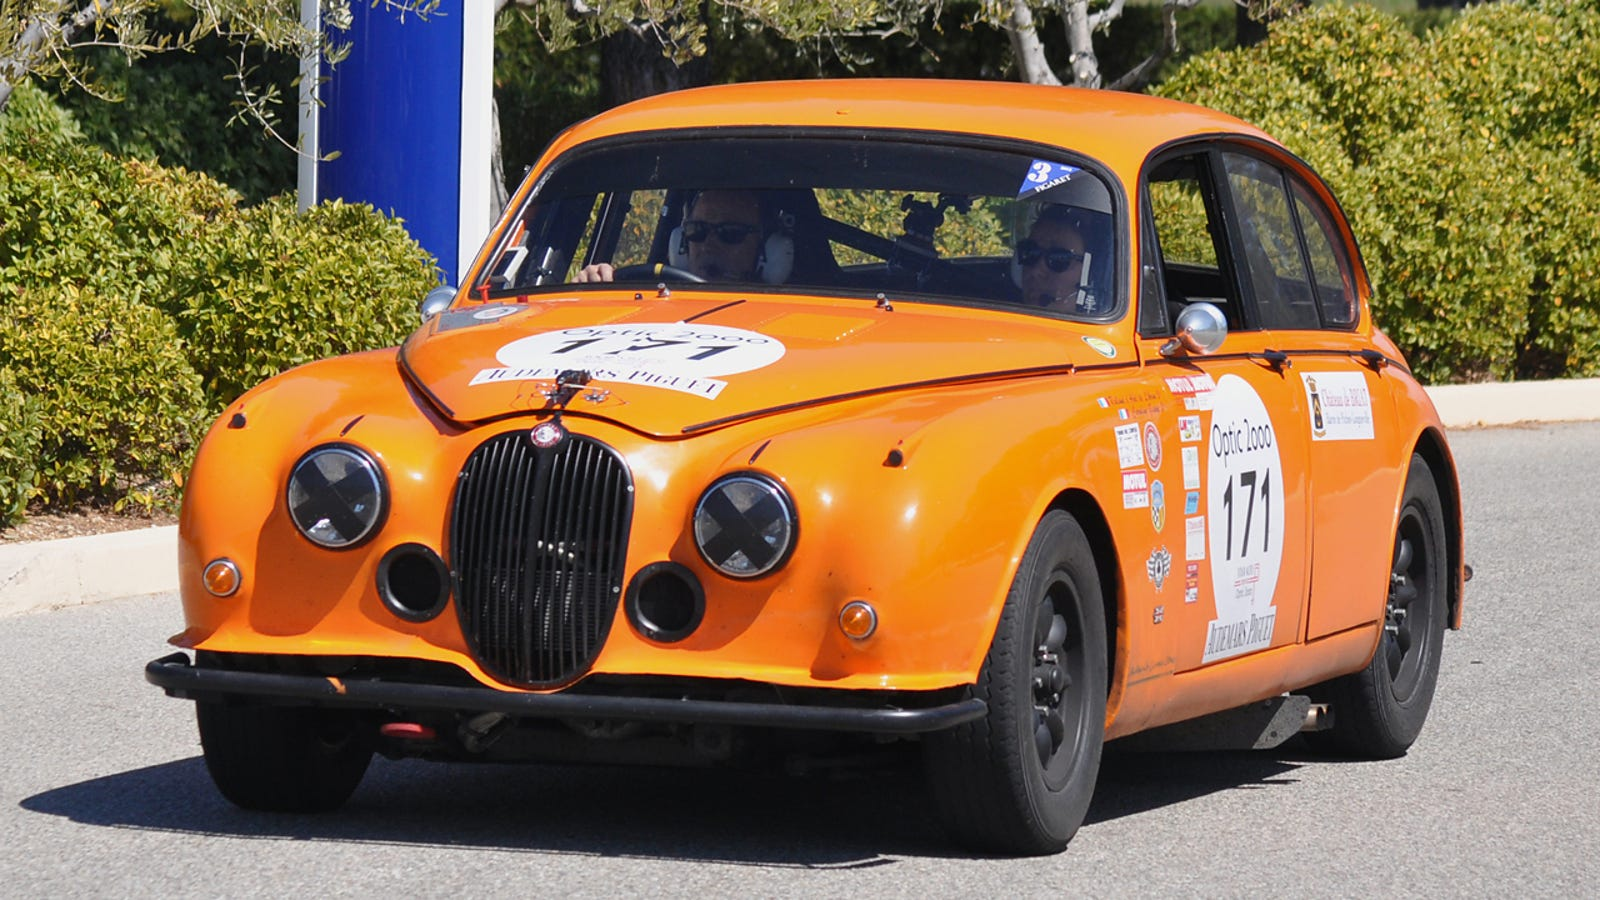 The Best Unlikely Race Cars